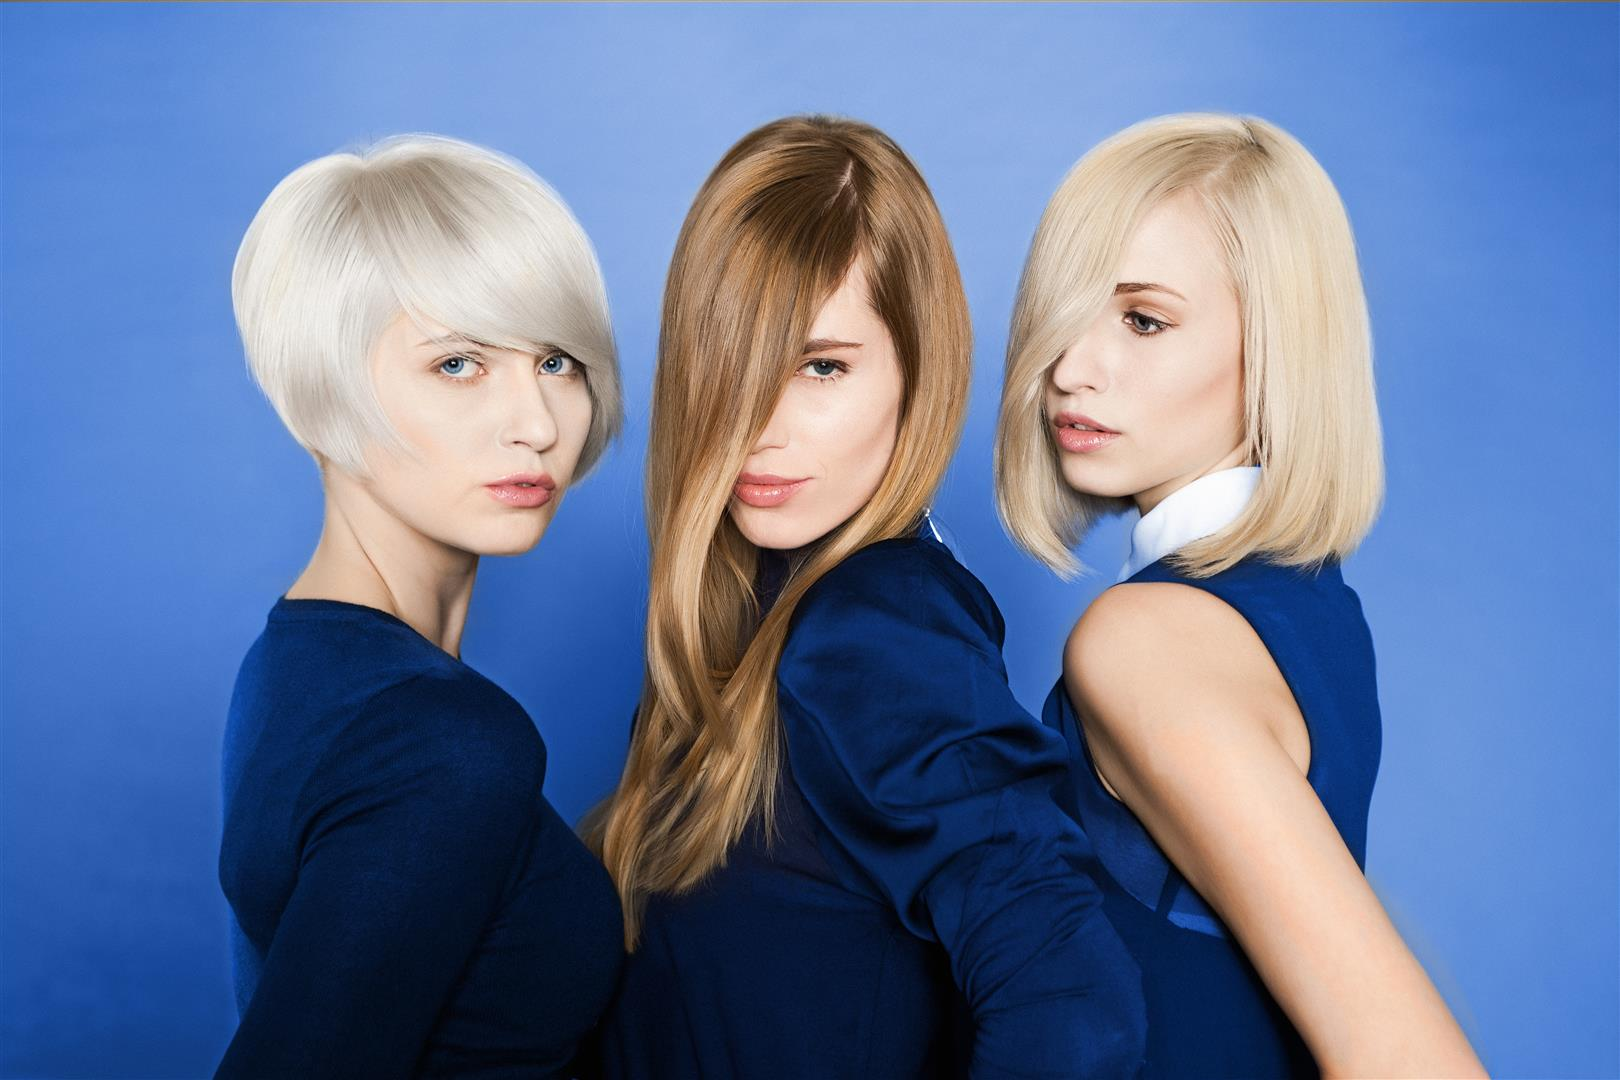 Frisuren young style